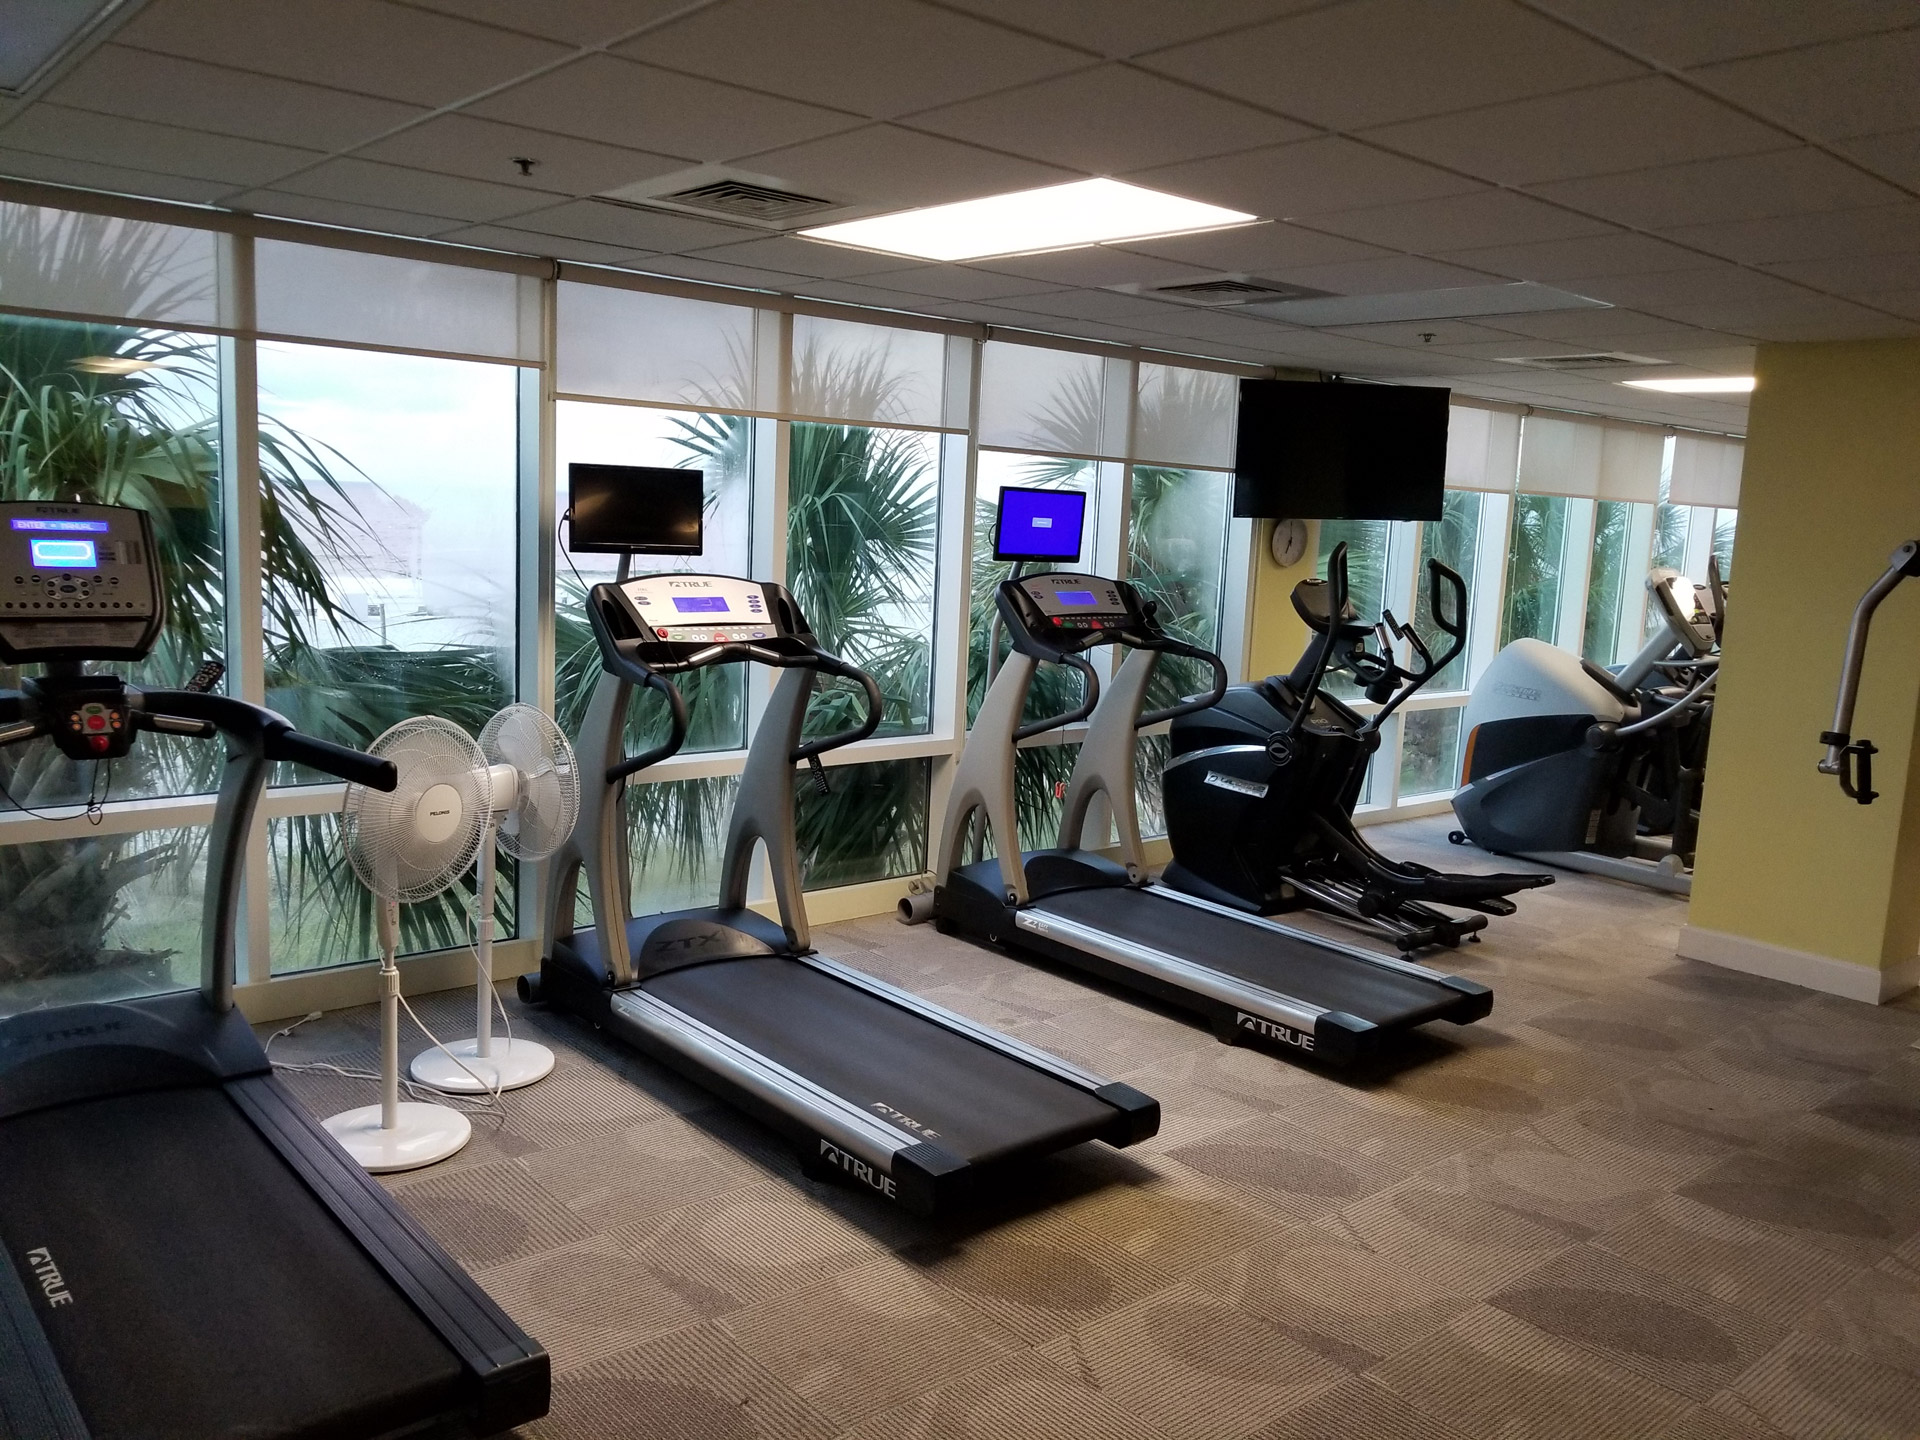 Treadmills in the Gym at Gulf Shores Condo Rental